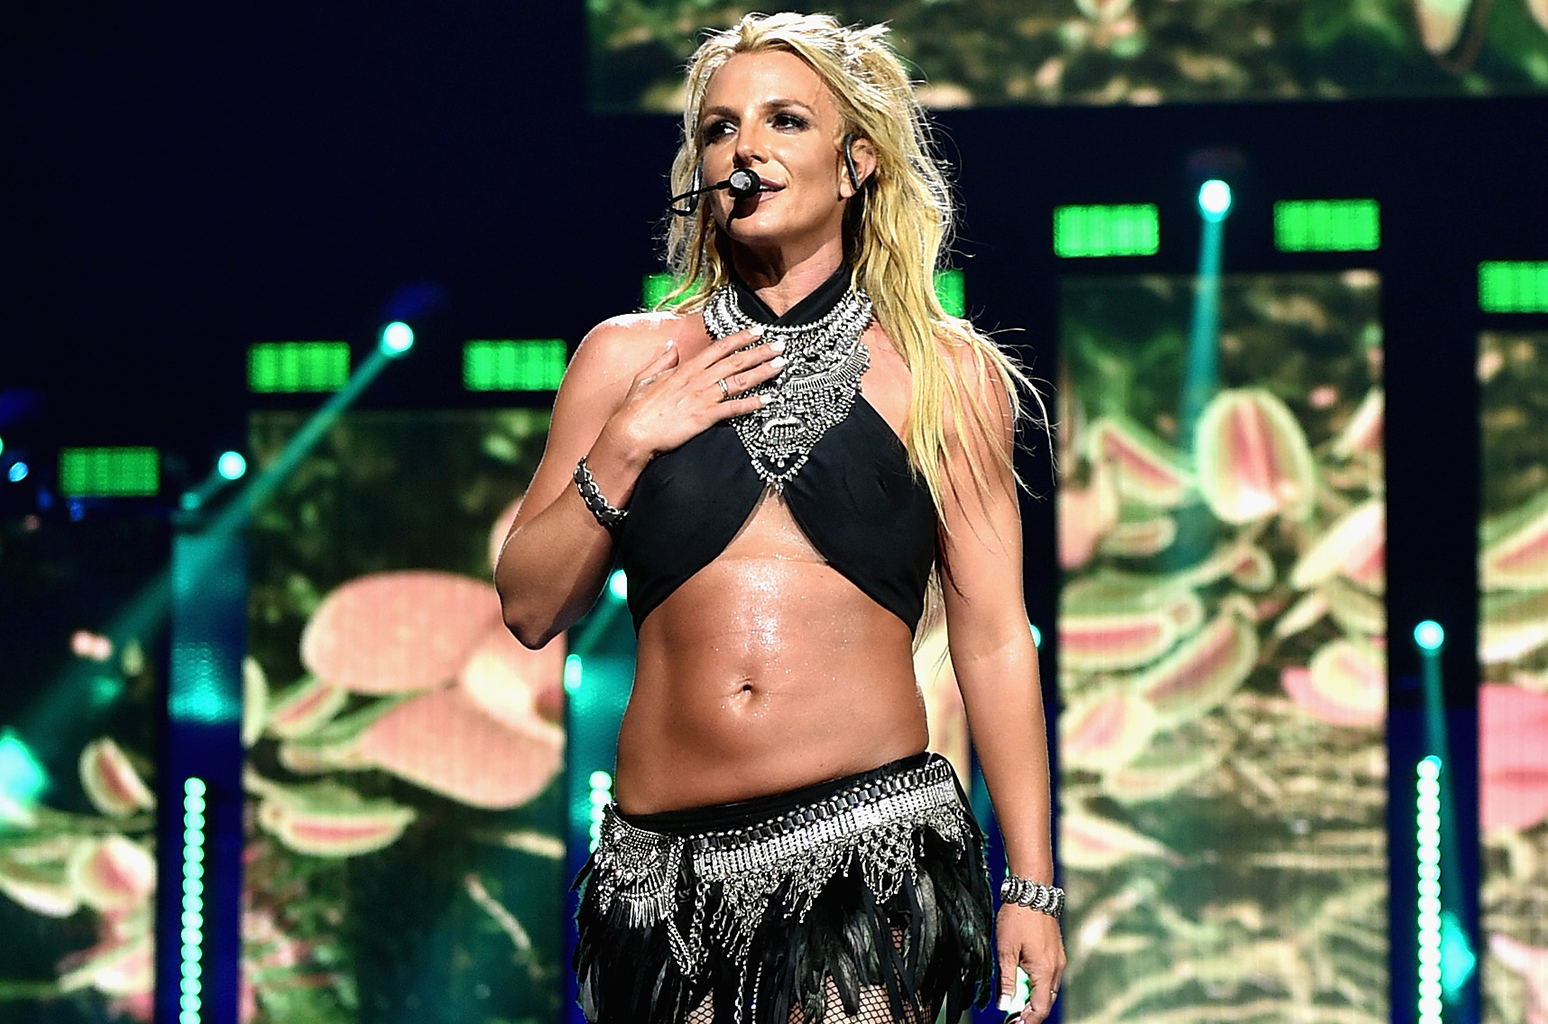 Britney Spears baja a fan borracho del escenario (VIDEO)